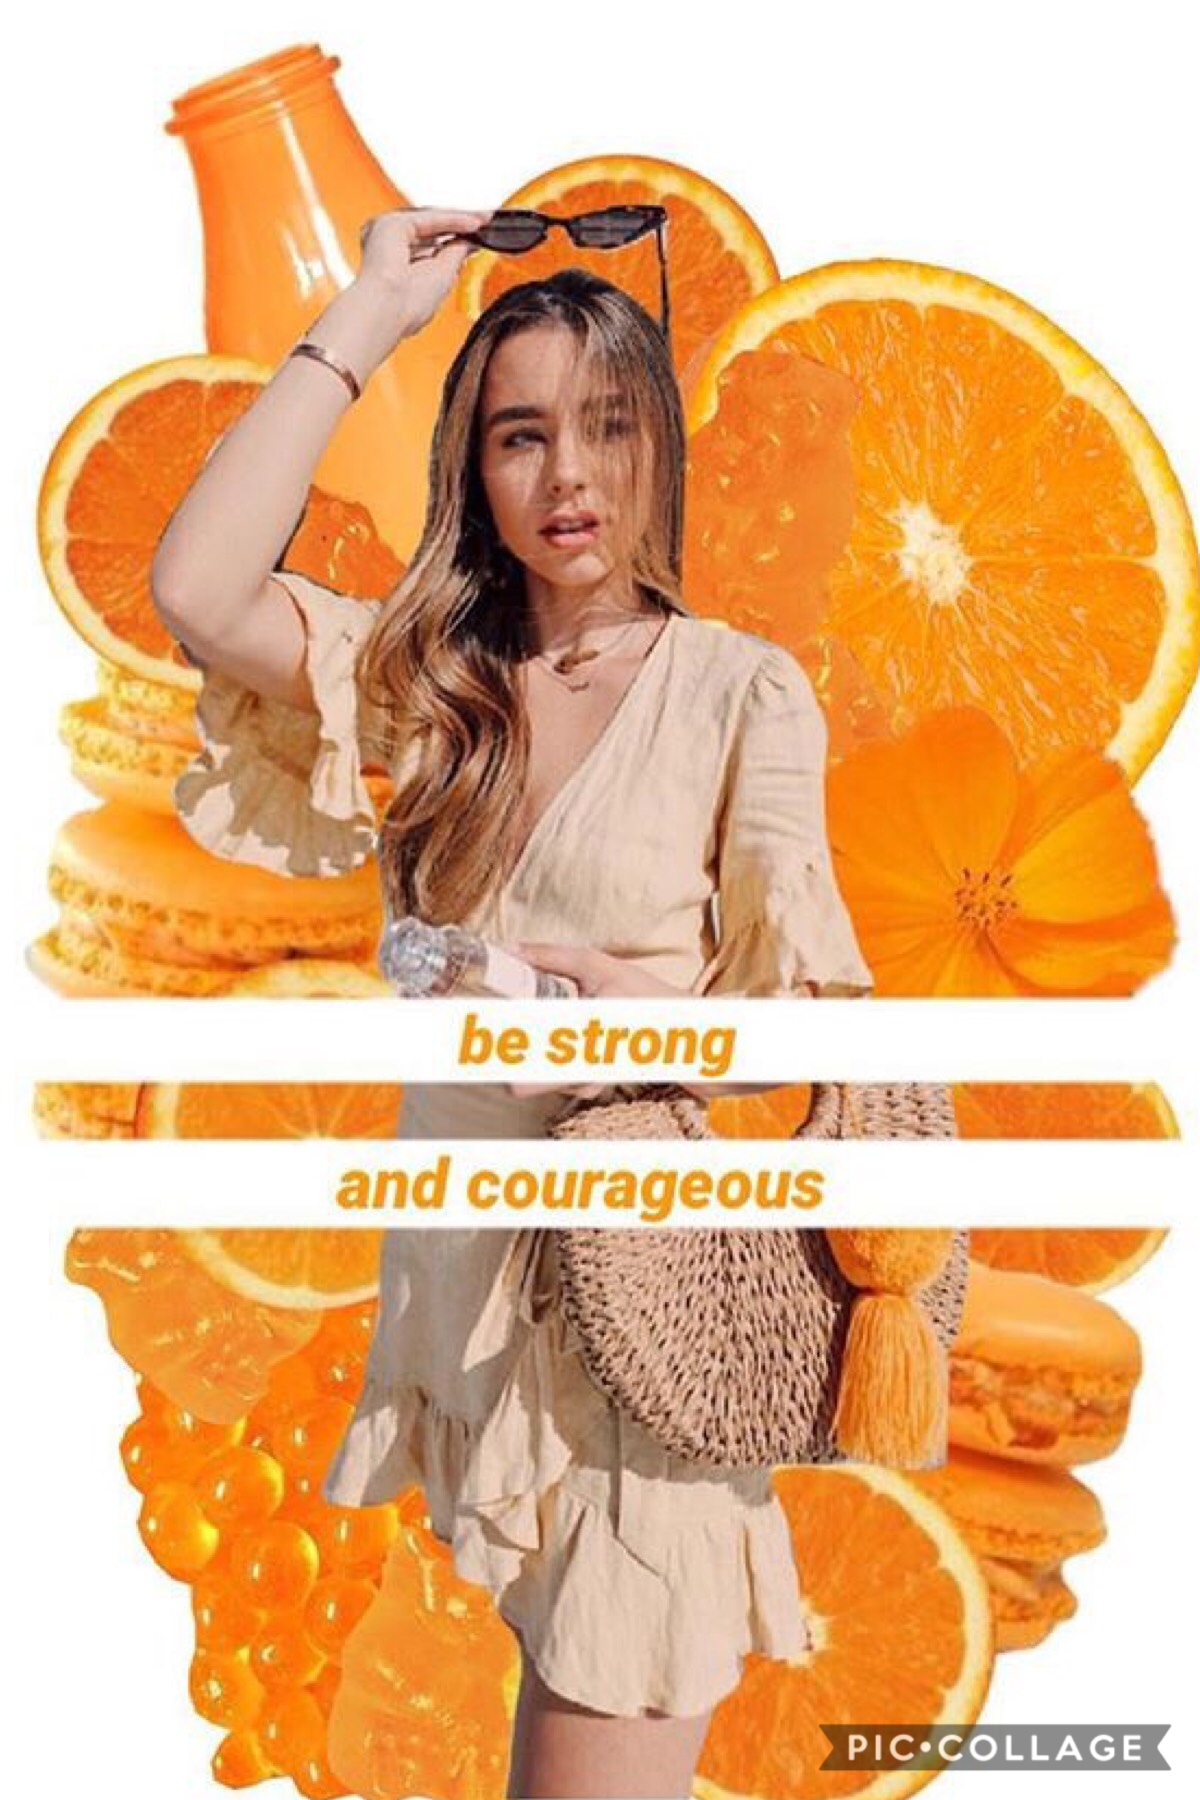 🧡TAPPY TAPPY MAKE ME HAPPY!🧡  Hi loves!! Sorry this is super simple, I'm working on super fun, cool, creative collages for you guys so stay tuned! Truly, Sierra is lie, THE QUEEN!!! 💓💓💓  Do you get a lot of homework?? 📚📚 Eh..a little form each subject. 😊